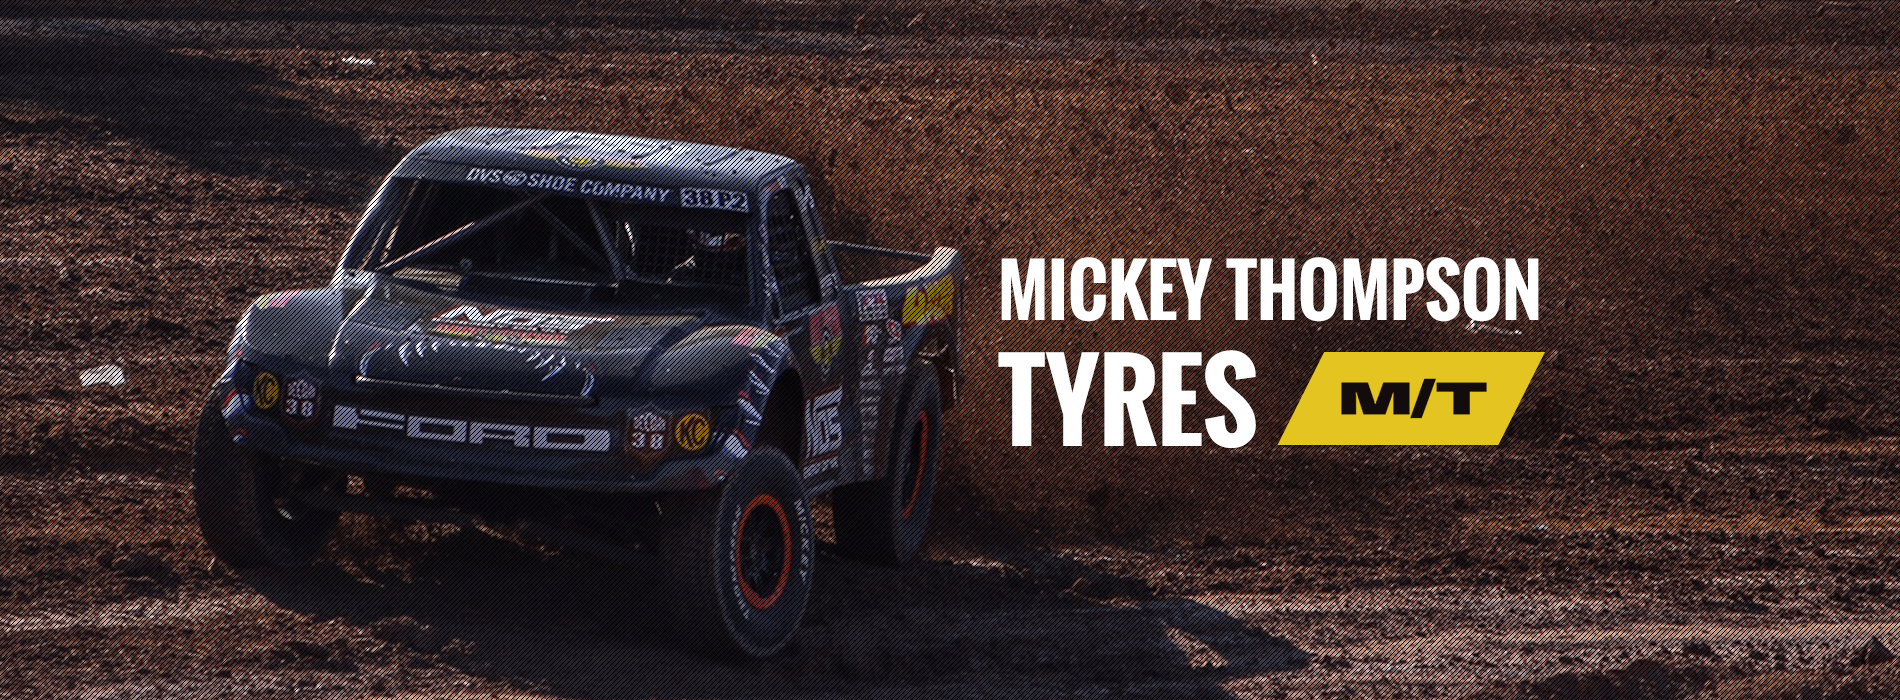 Welcome to Mickey Thompson Tyres New Zealand